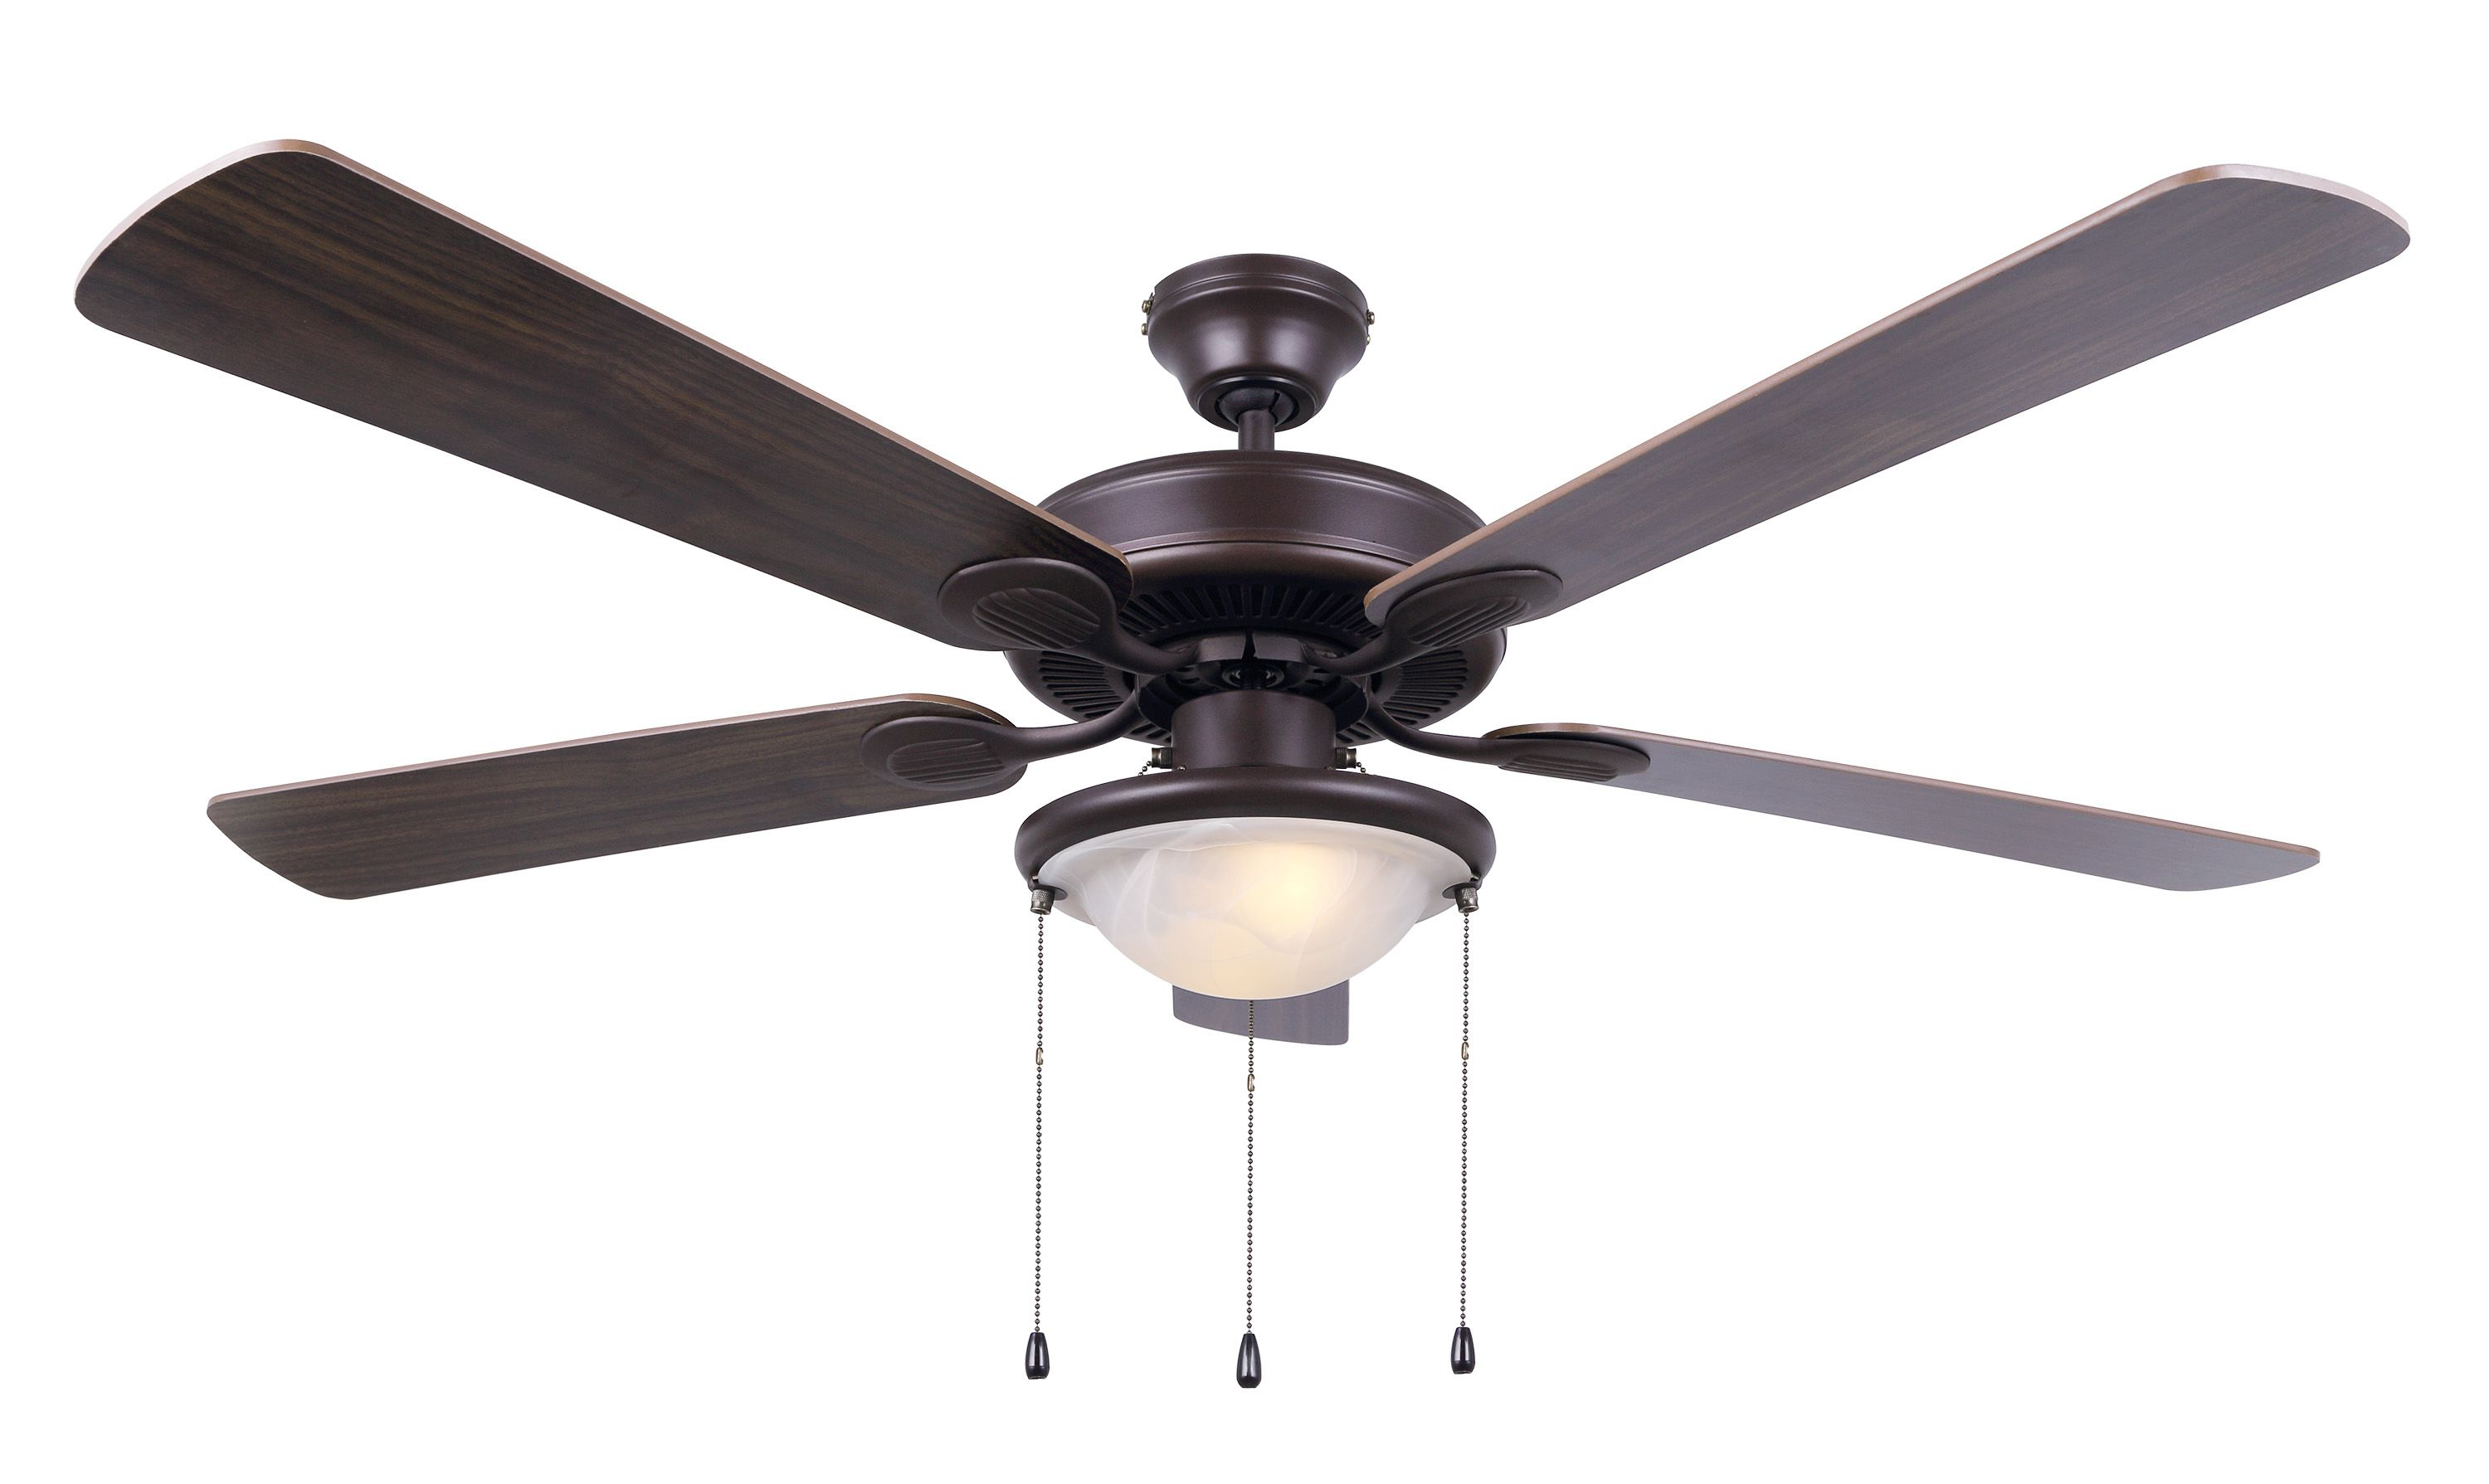 Famous Canarm Cf52kin5orb Oil Rubbed Bronze Ceiling Fan Throughout Quebec 5 Blade Ceiling Fans (View 19 of 20)